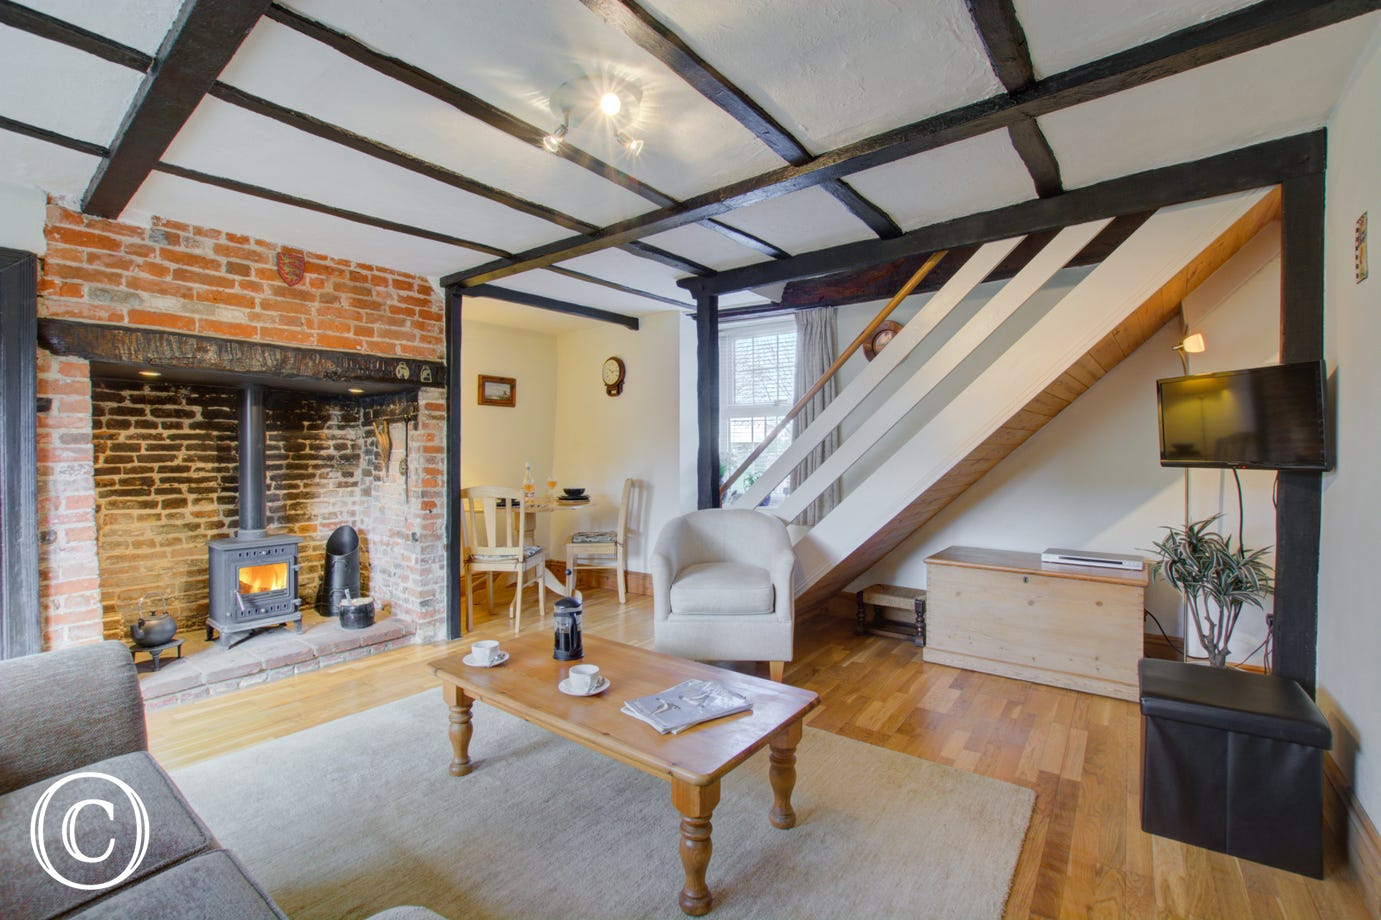 Sitting room with open beams and inglenook fireplace